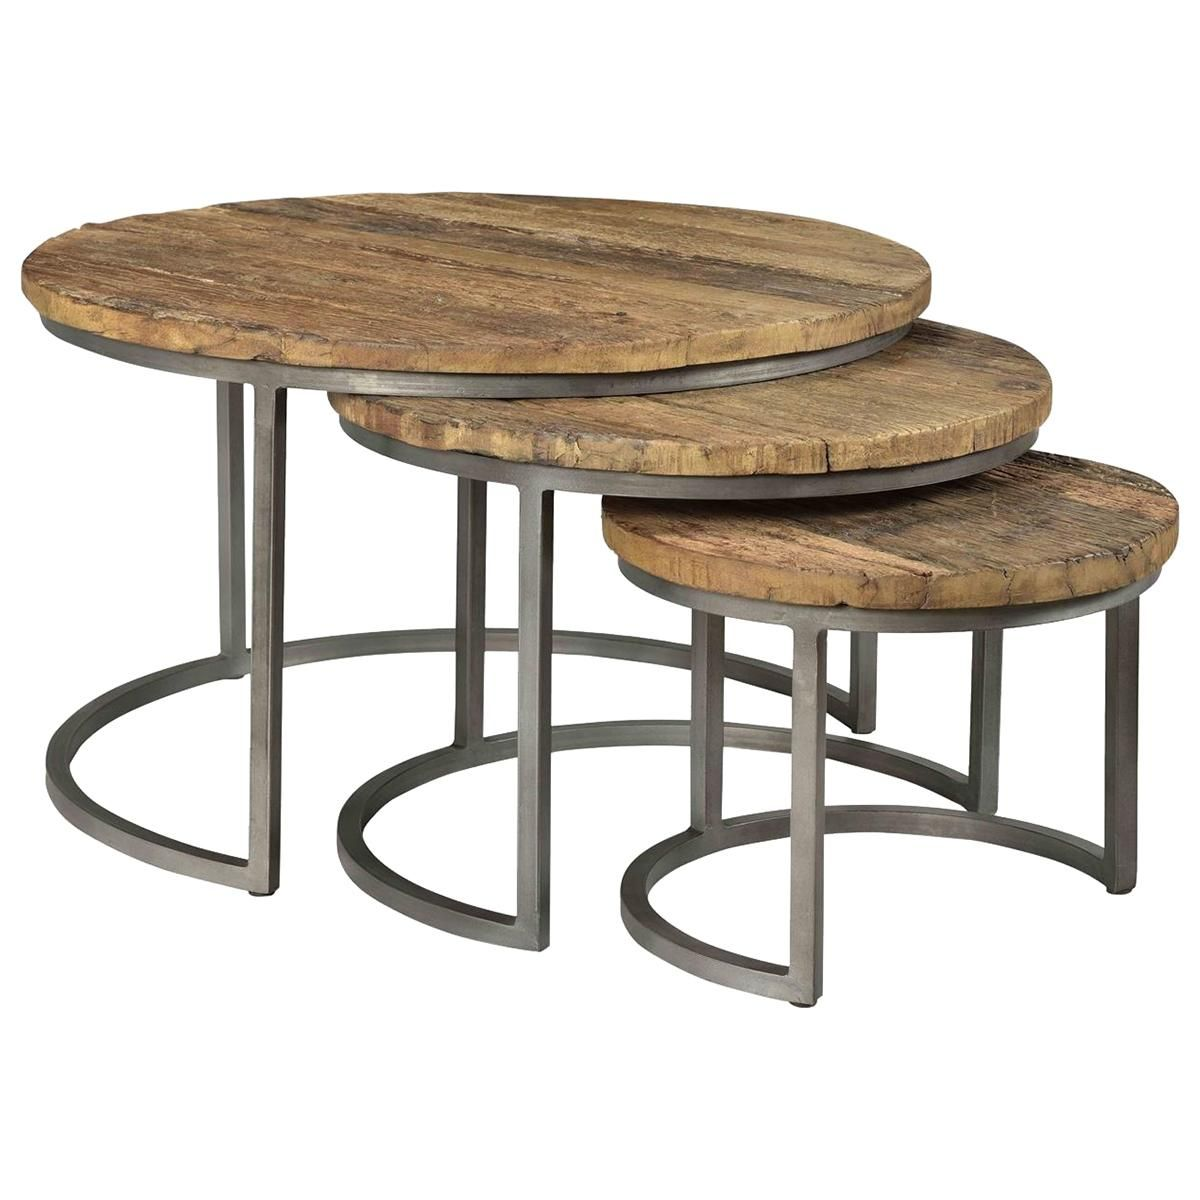 Shannon Hills Tania 3 Piece Set Of Nesting Tables In Rustic Saal And Bronze Nfm Nesting Coffee Tables Nesting Tables Coffee Table [ 1200 x 1200 Pixel ]